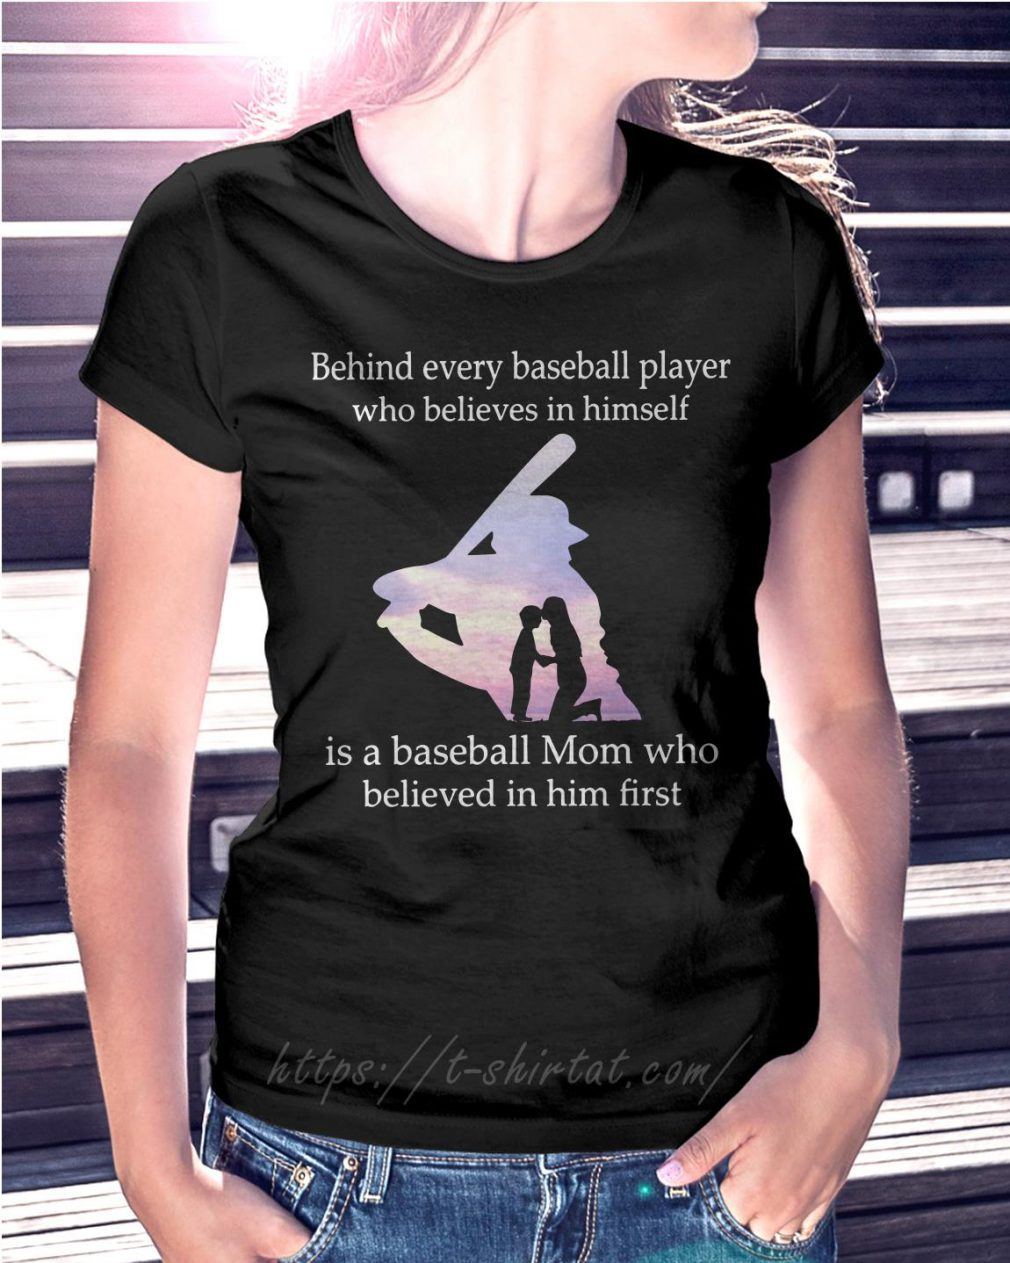 Behind every baseball player who believes in himself is a baseball mom who believed in him first